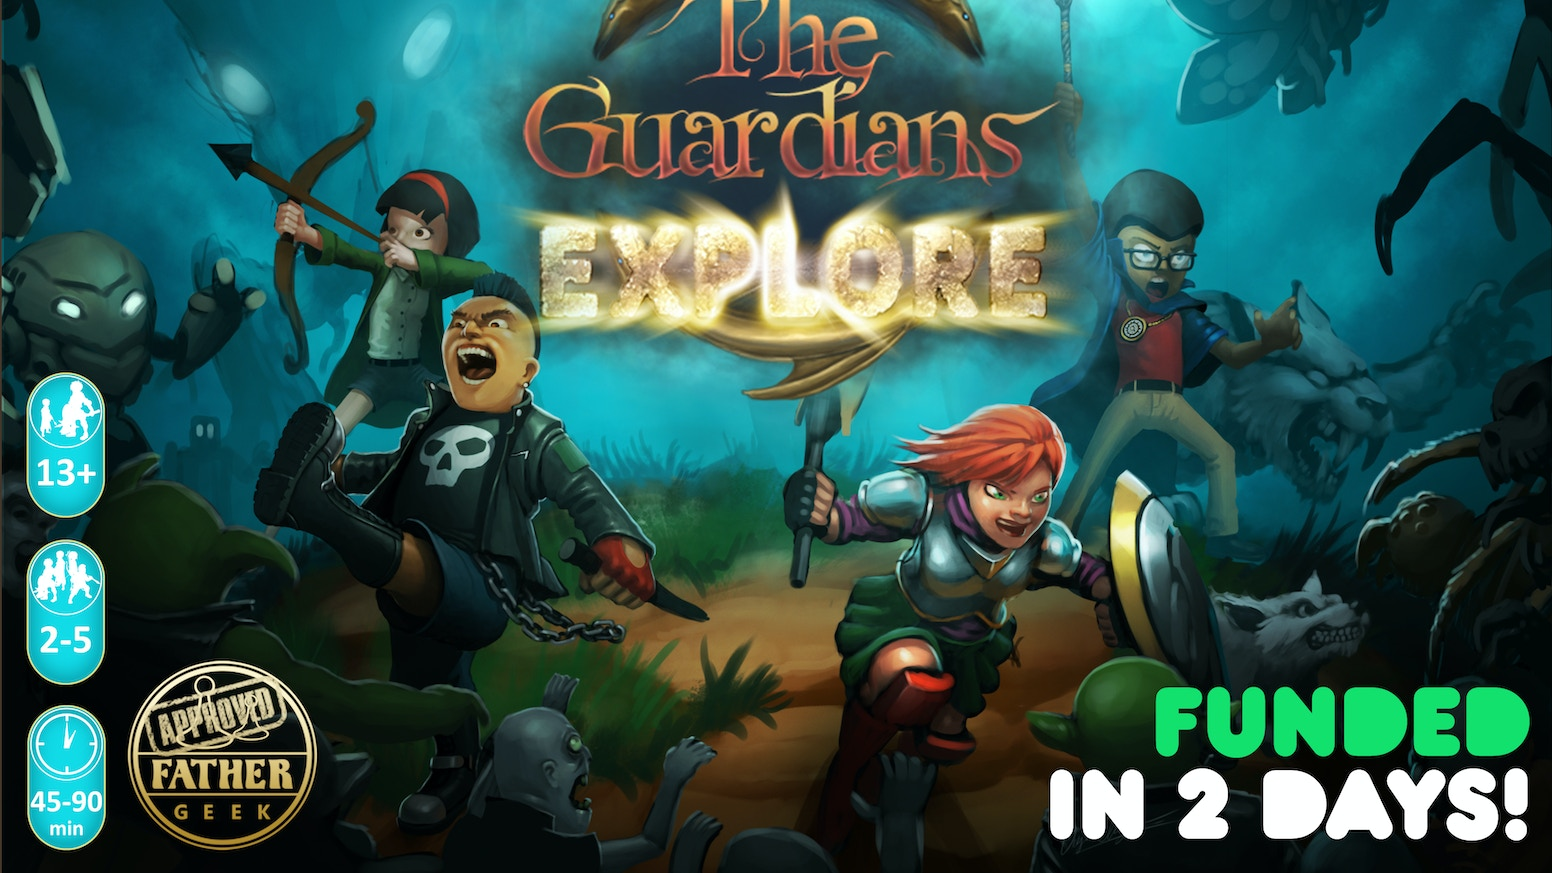 The Guardians: Explore - a card based adventure game to save Arthursburg from a monster invasion and crown a True Guardian.